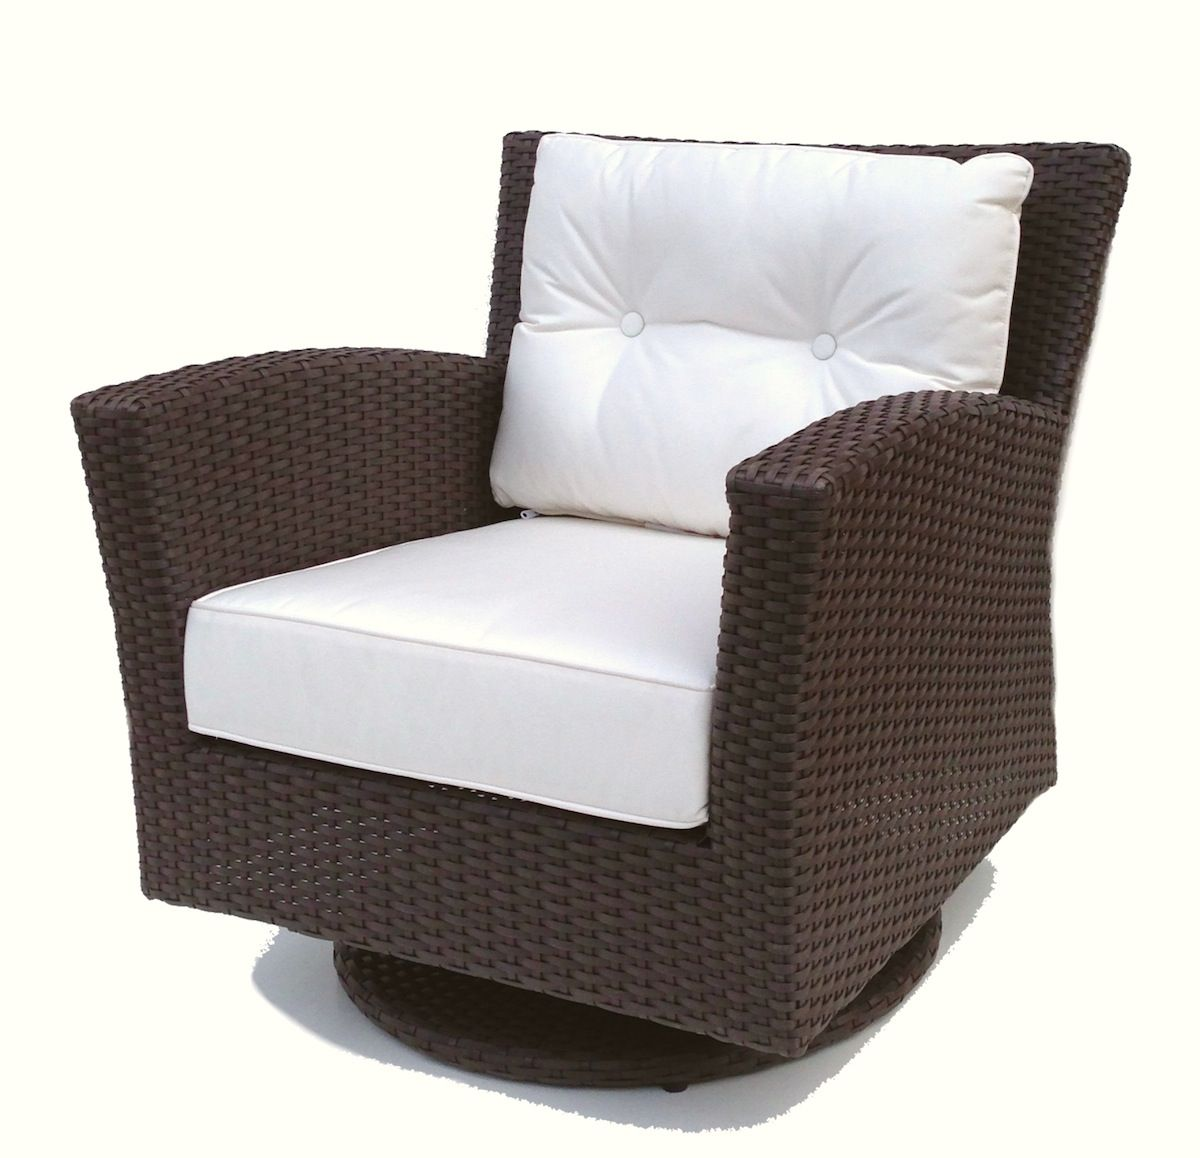 How To Care For Your Wicker Chairs Wicker Chairs Outdoor Wicker Swivel Rocker Chair Sonoma Kkvs Wicker Swivel Chair Lounge Chair Outdoor Swivel Rocker Chair